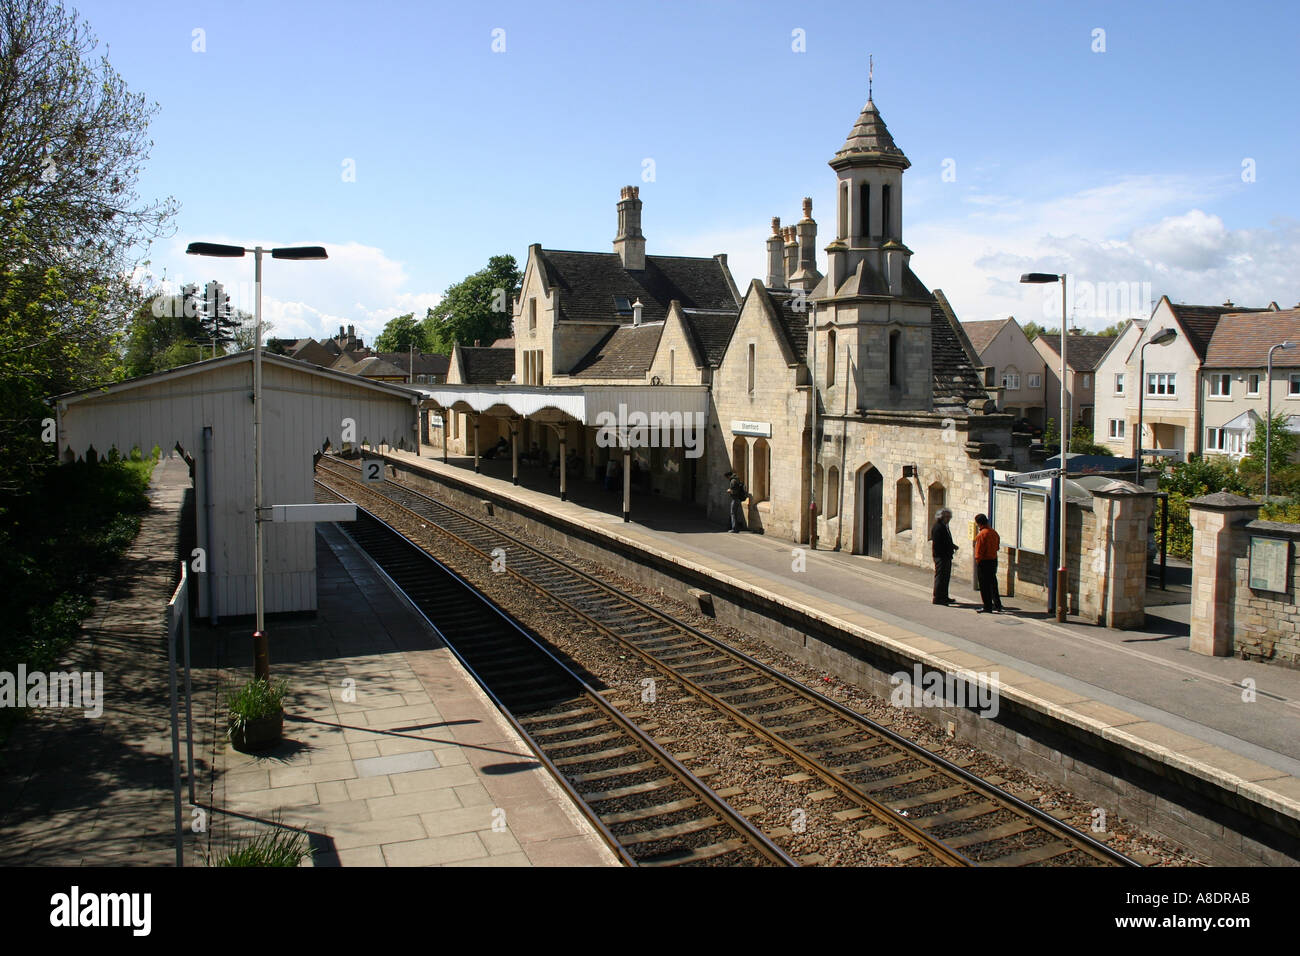 stamford train station stock photos & stamford train station stock